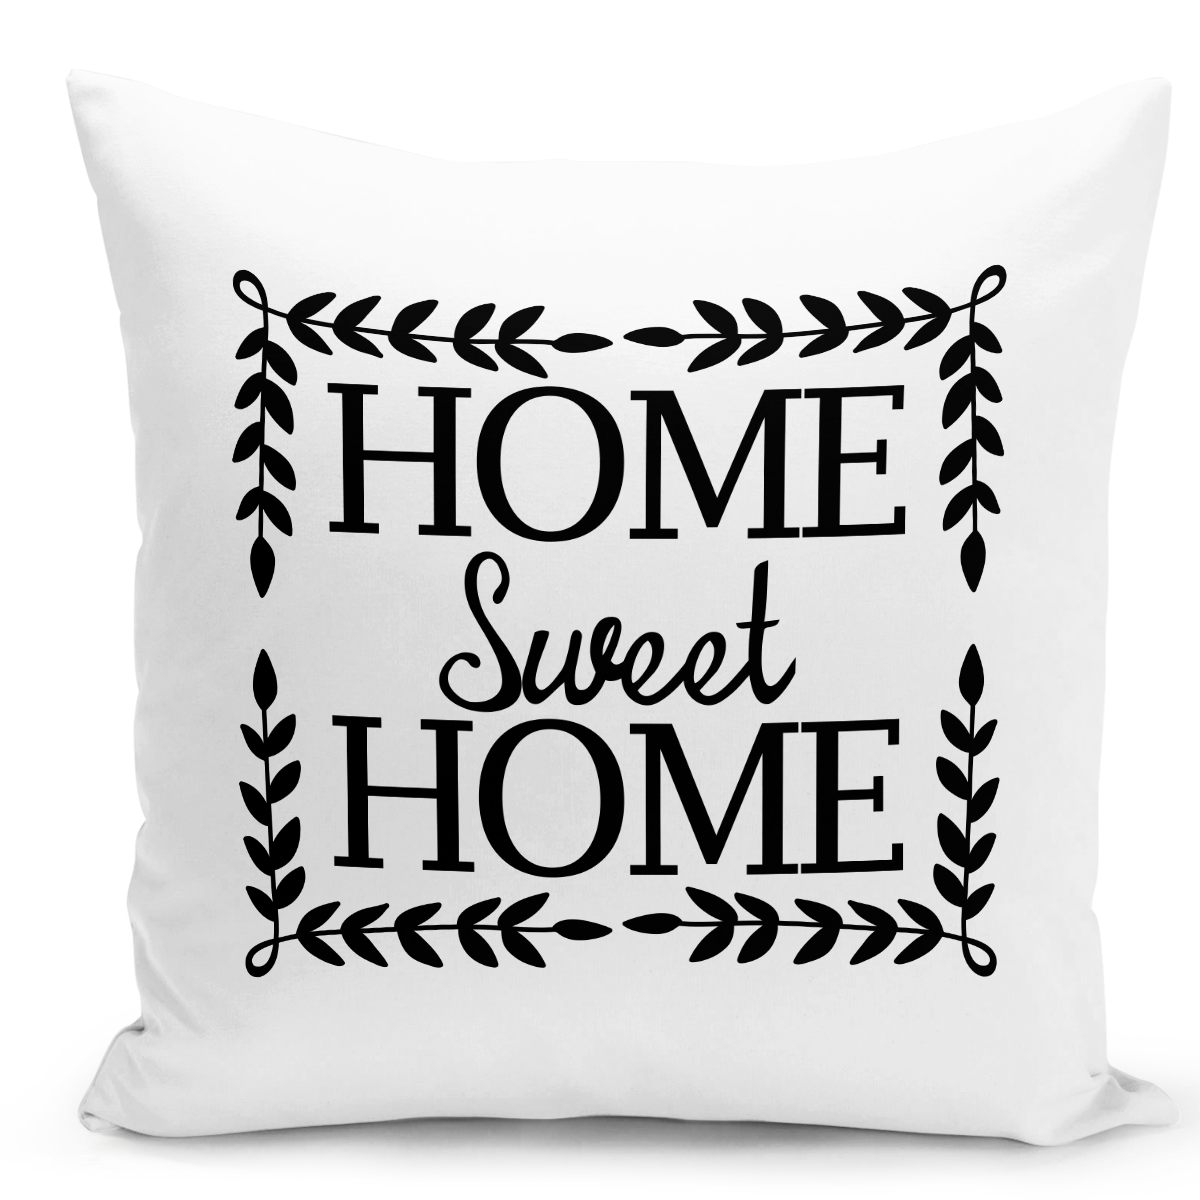 White-Throw-Pillow-Home-Syweet-Home-Pillow---Pure-White-Printed-16-x-16-inch-Square-Home-Decor-Couch-Pillow-